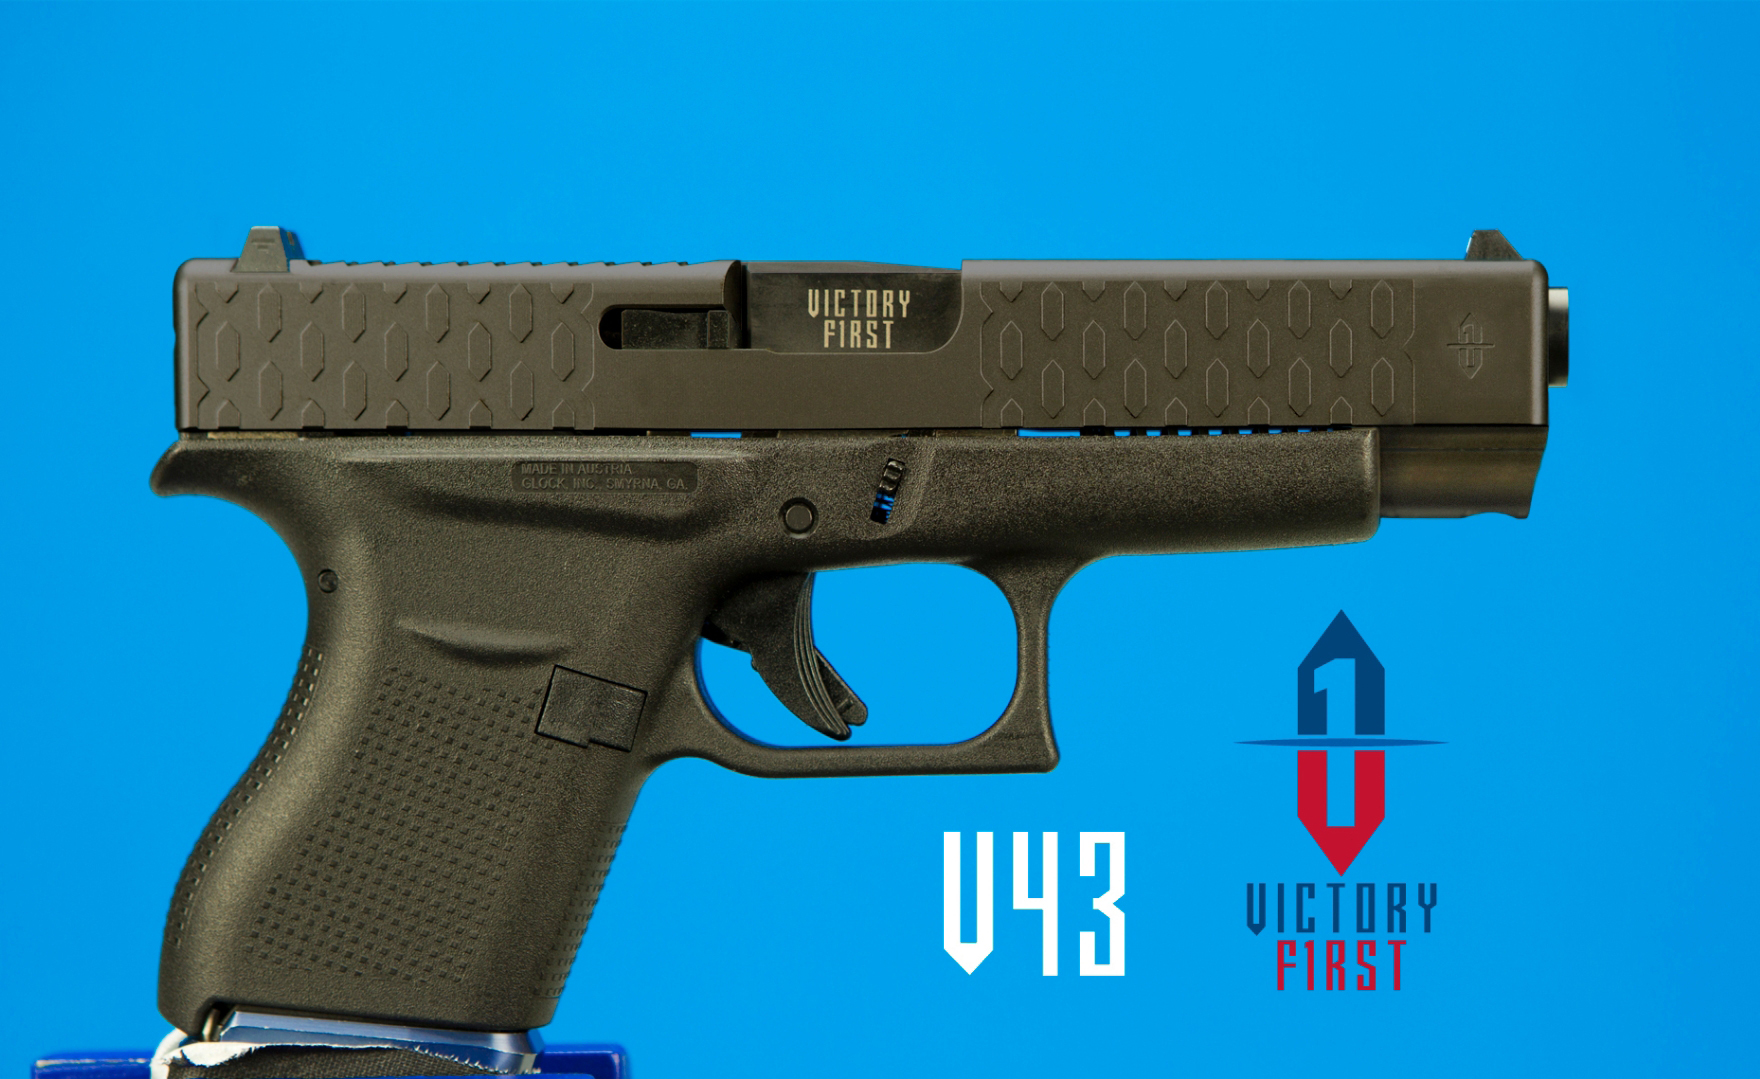 Victory First V43 Glock 43 Upgrade